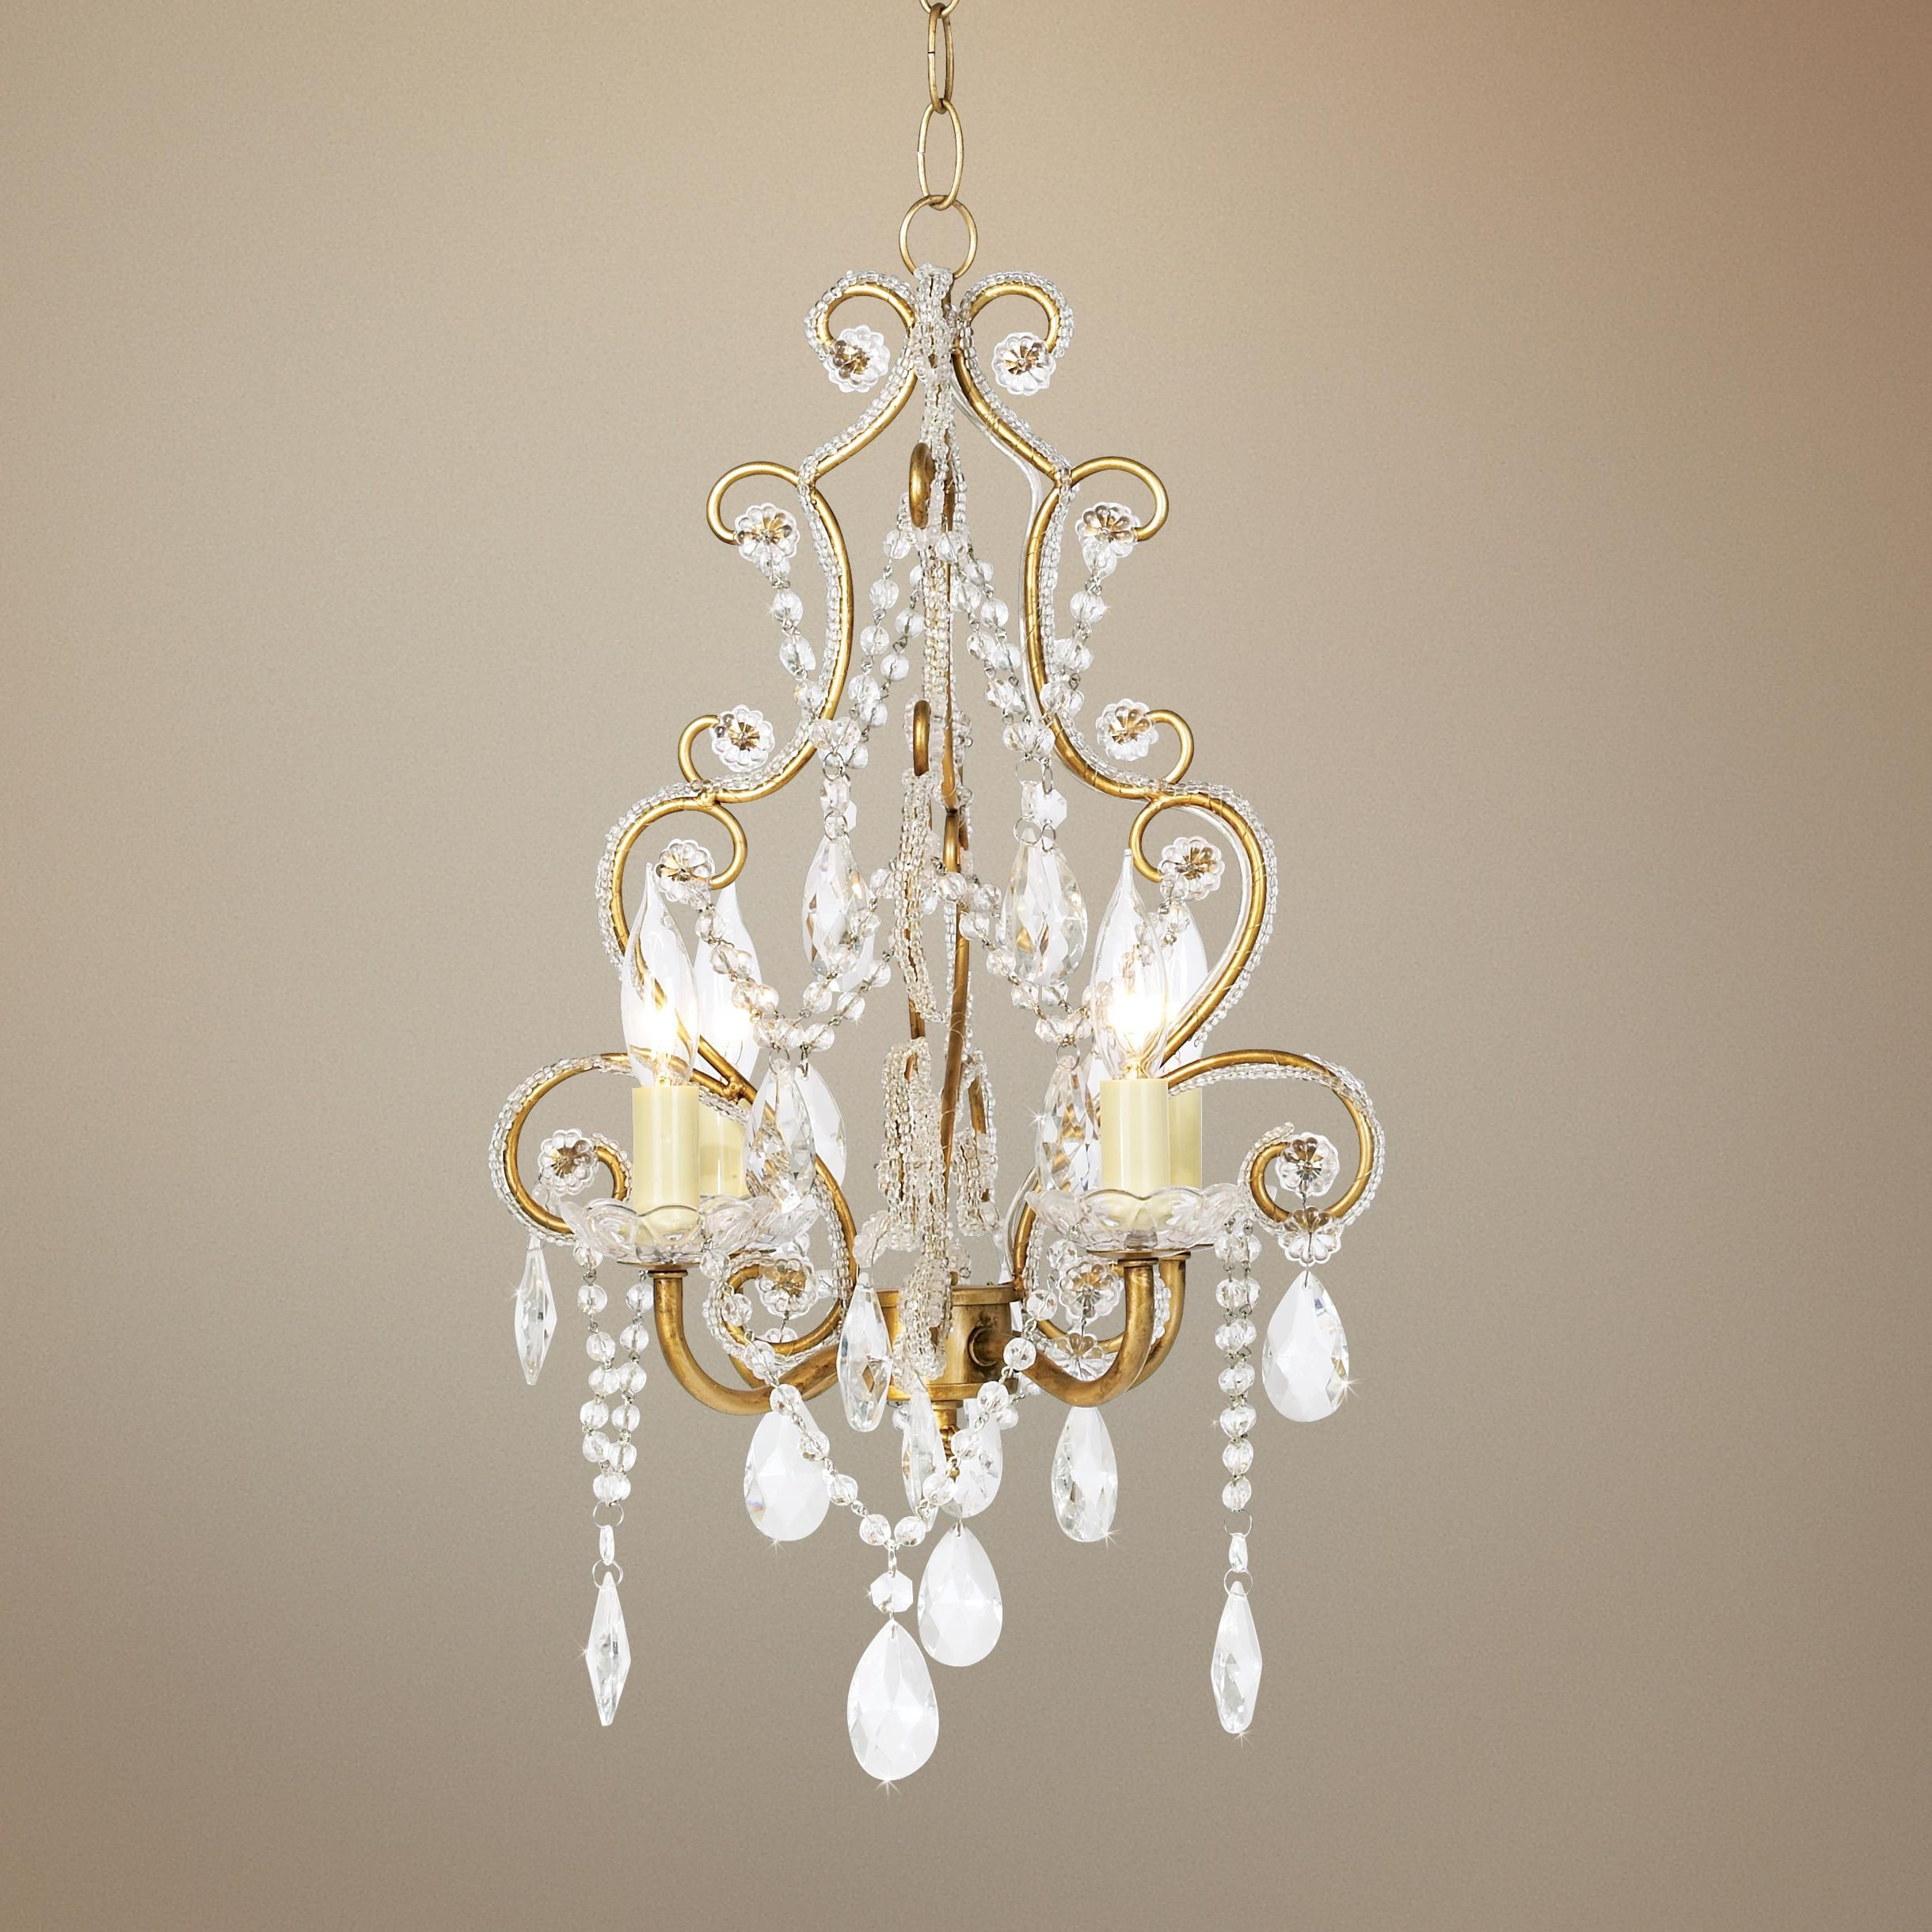 Antique Gold with Clear Beads Swag Plug In Chandelier from Lamps